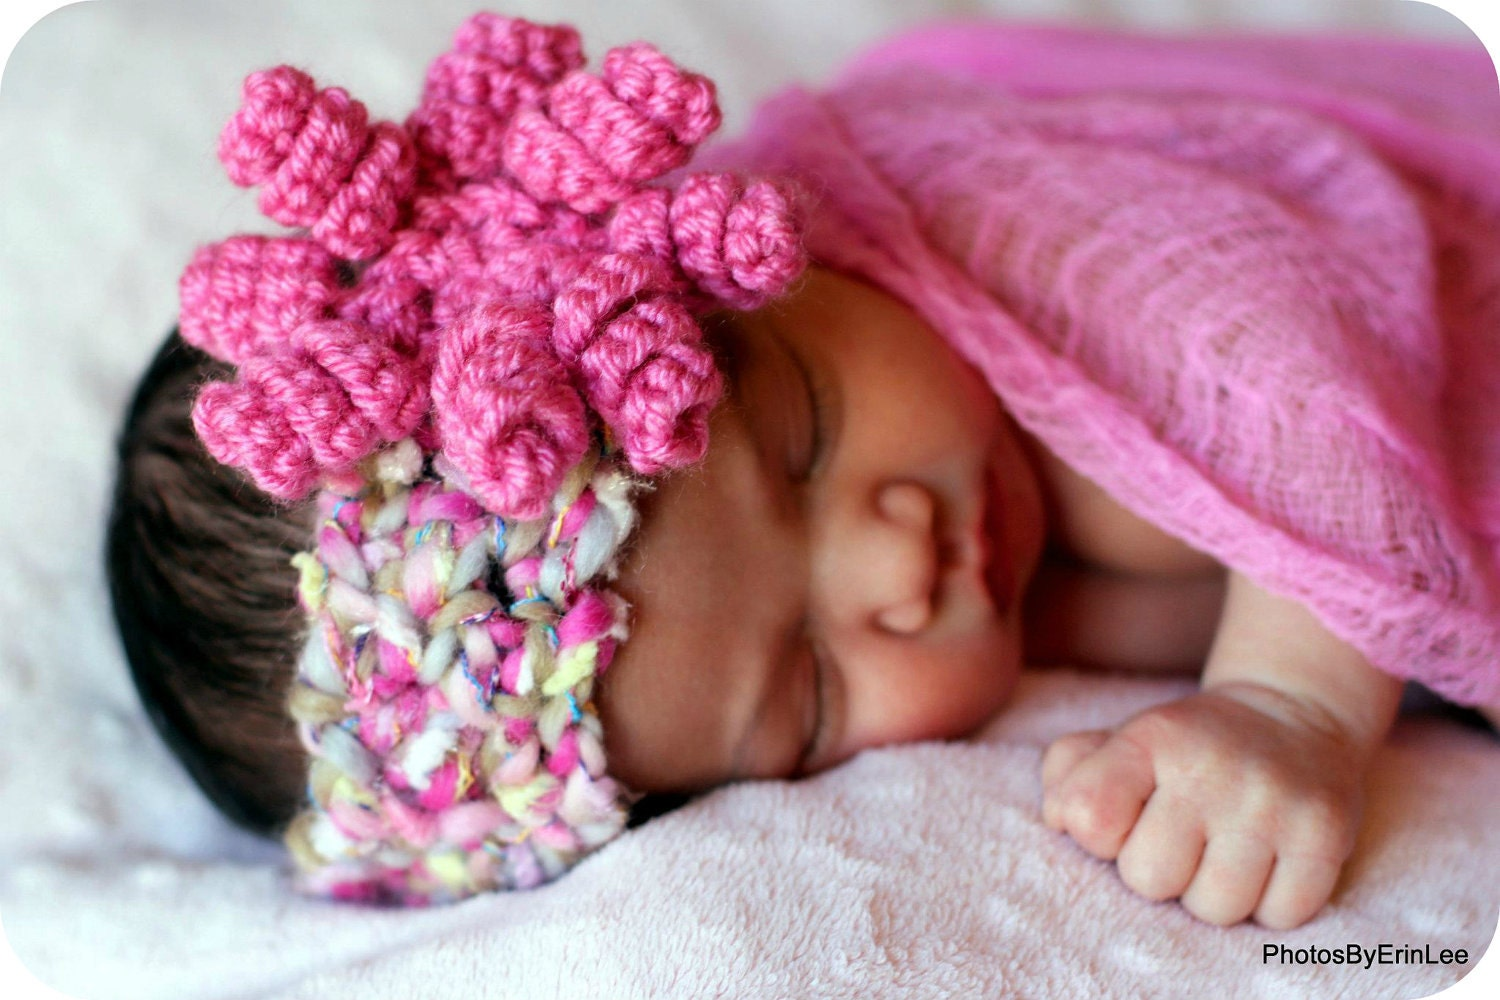 Crochet Headband Pattern For Baby With Flower : BABY Hat CROCHET PATTERN Headband with Curly-Q Flower